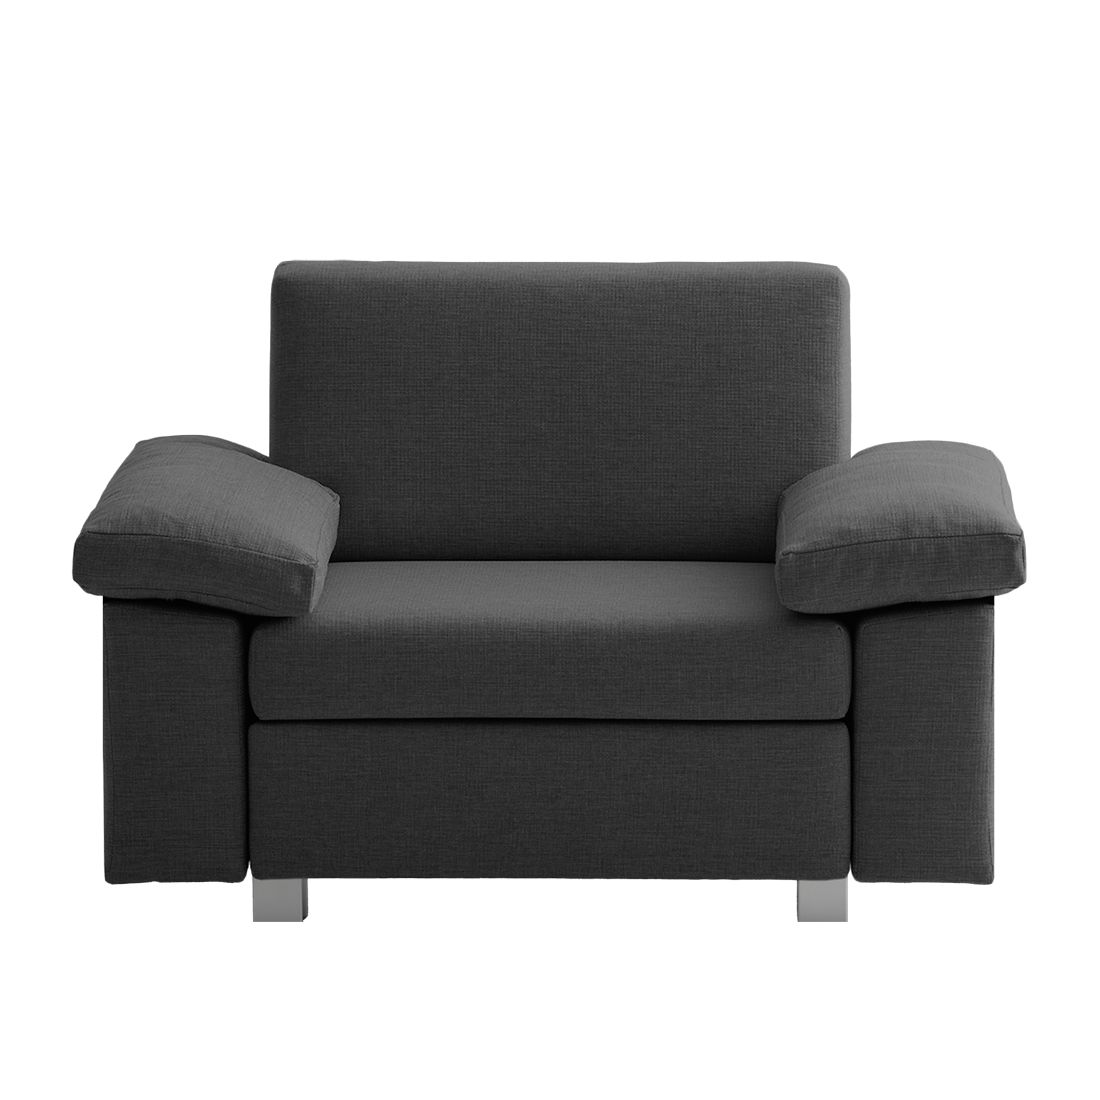 Fauteuil convertible Plaza - Tissu - Anthracite - Types d'accoudoir rabattable, chillout by Franz Fertig